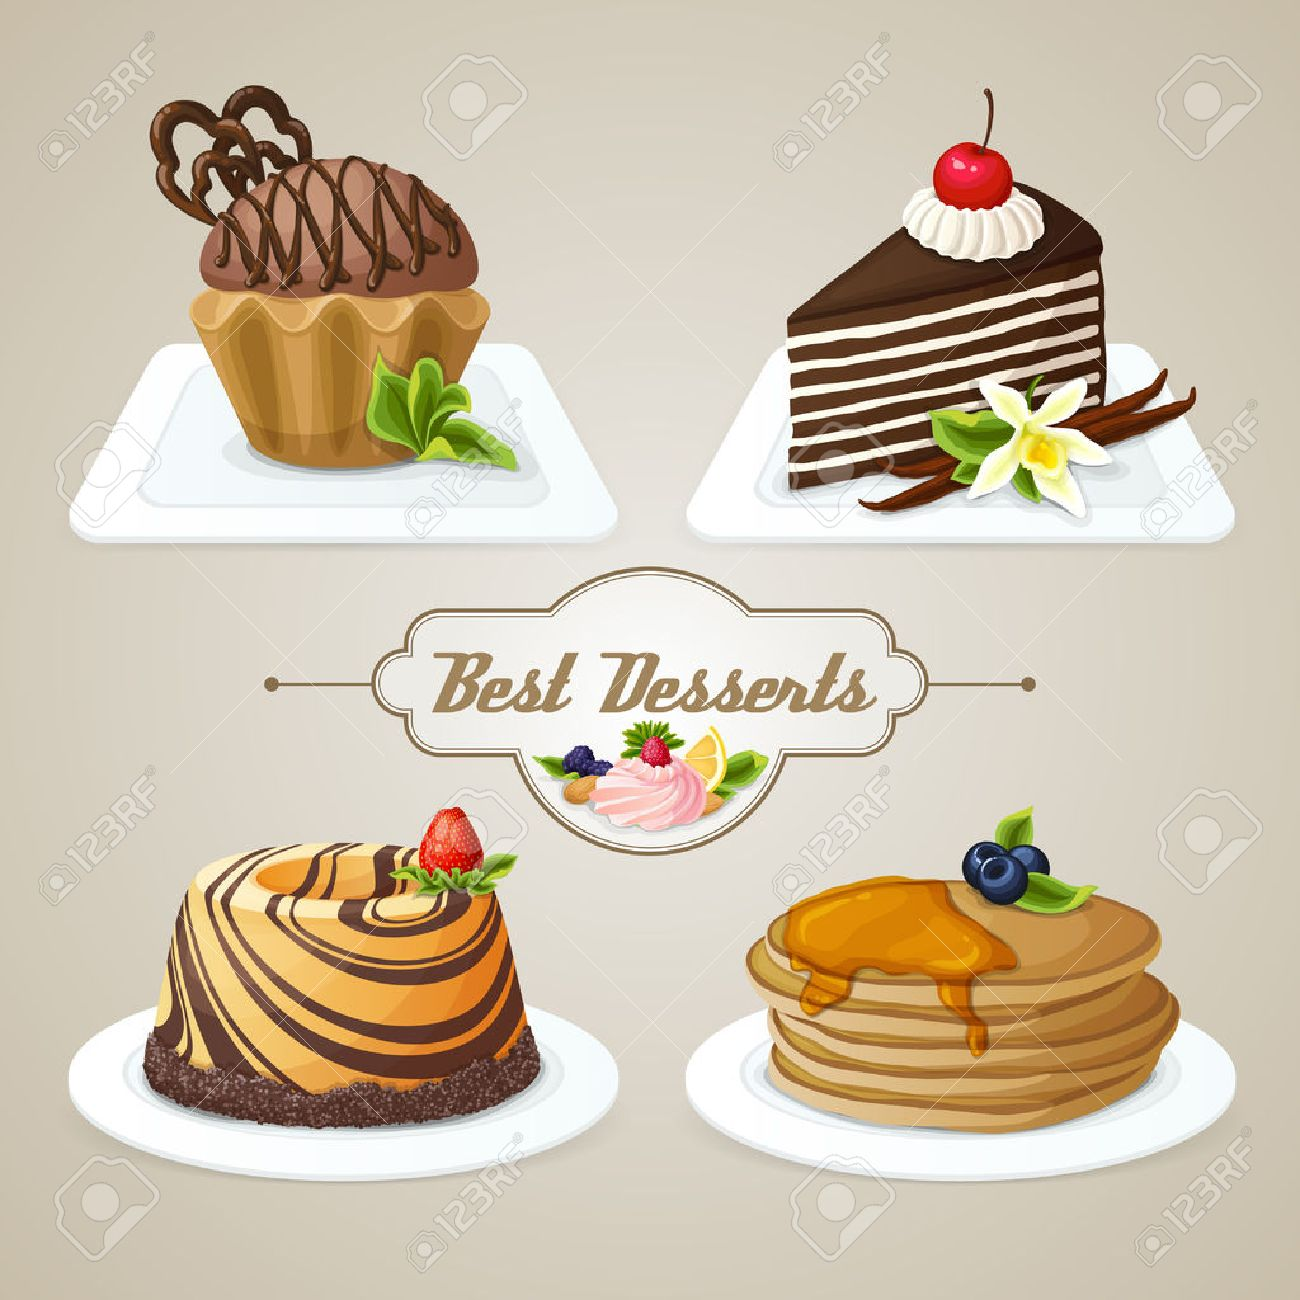 Decorative sweets food dessert set of muffin pan layered cake brioche vector illustration Stock Vector - 29446996